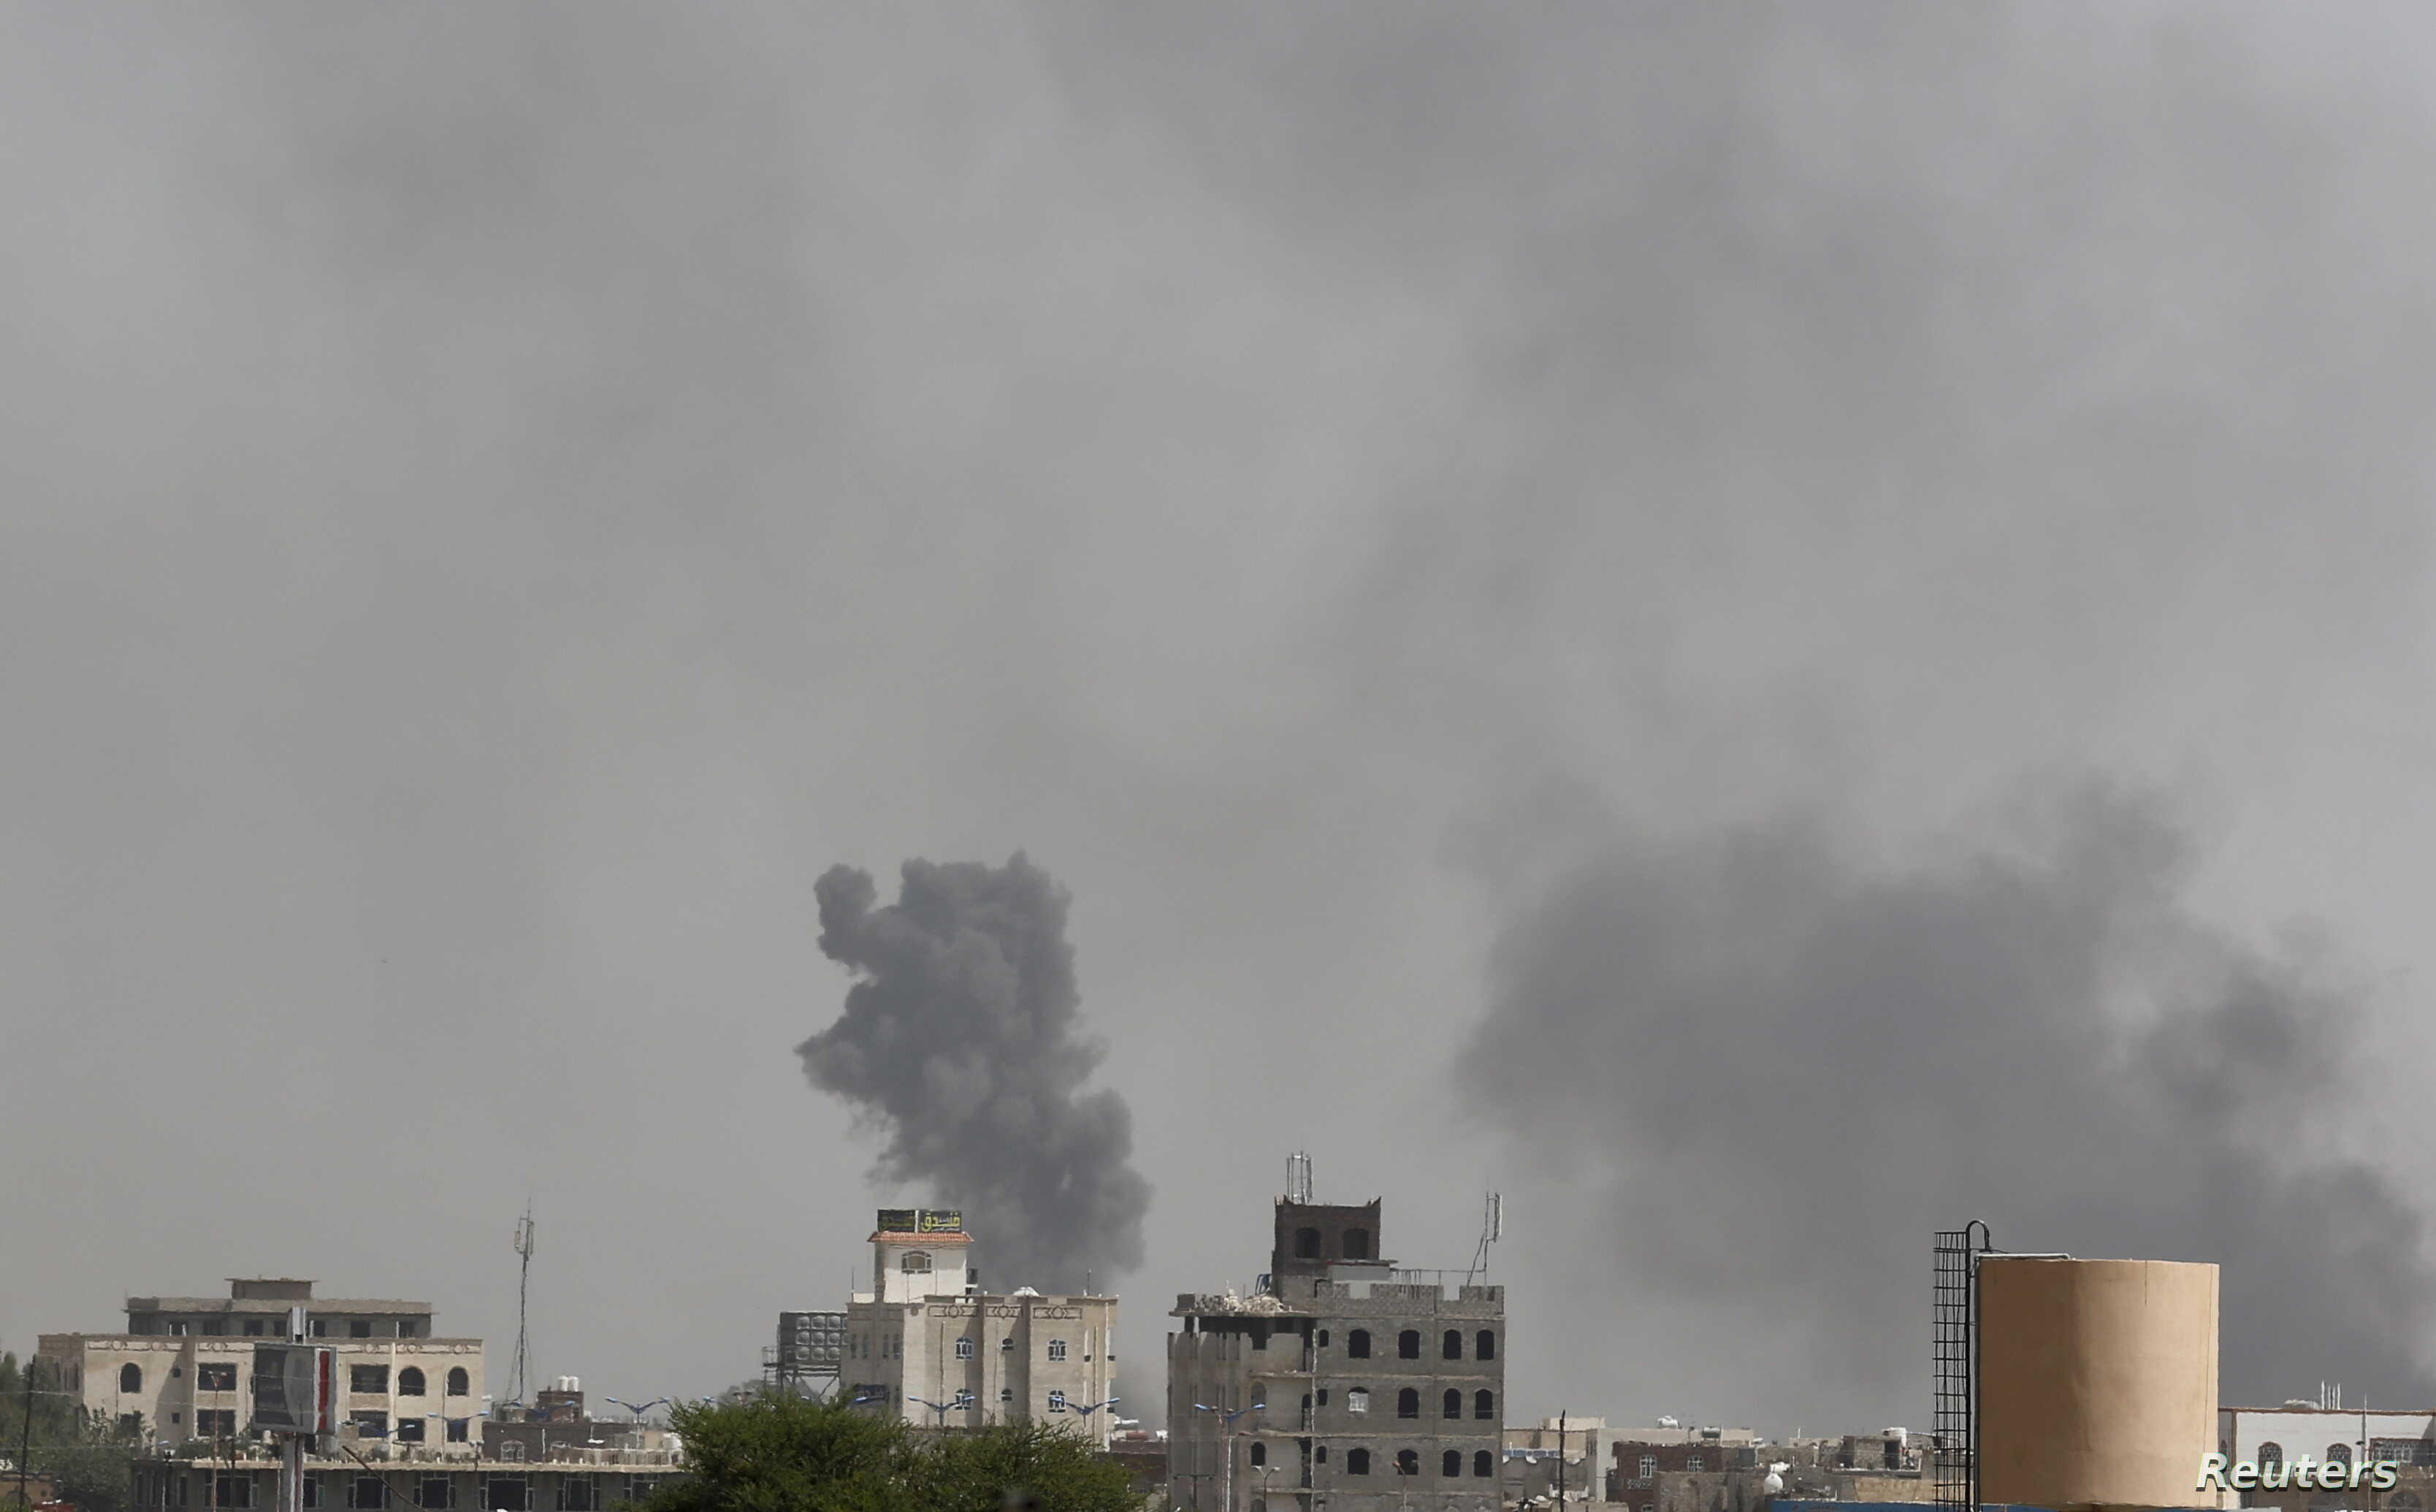 Smoke billows from the site of Saudi-led air strikes on al-Dailami air base in Yemen's capital Sana'a, Sept. 6, 2015.